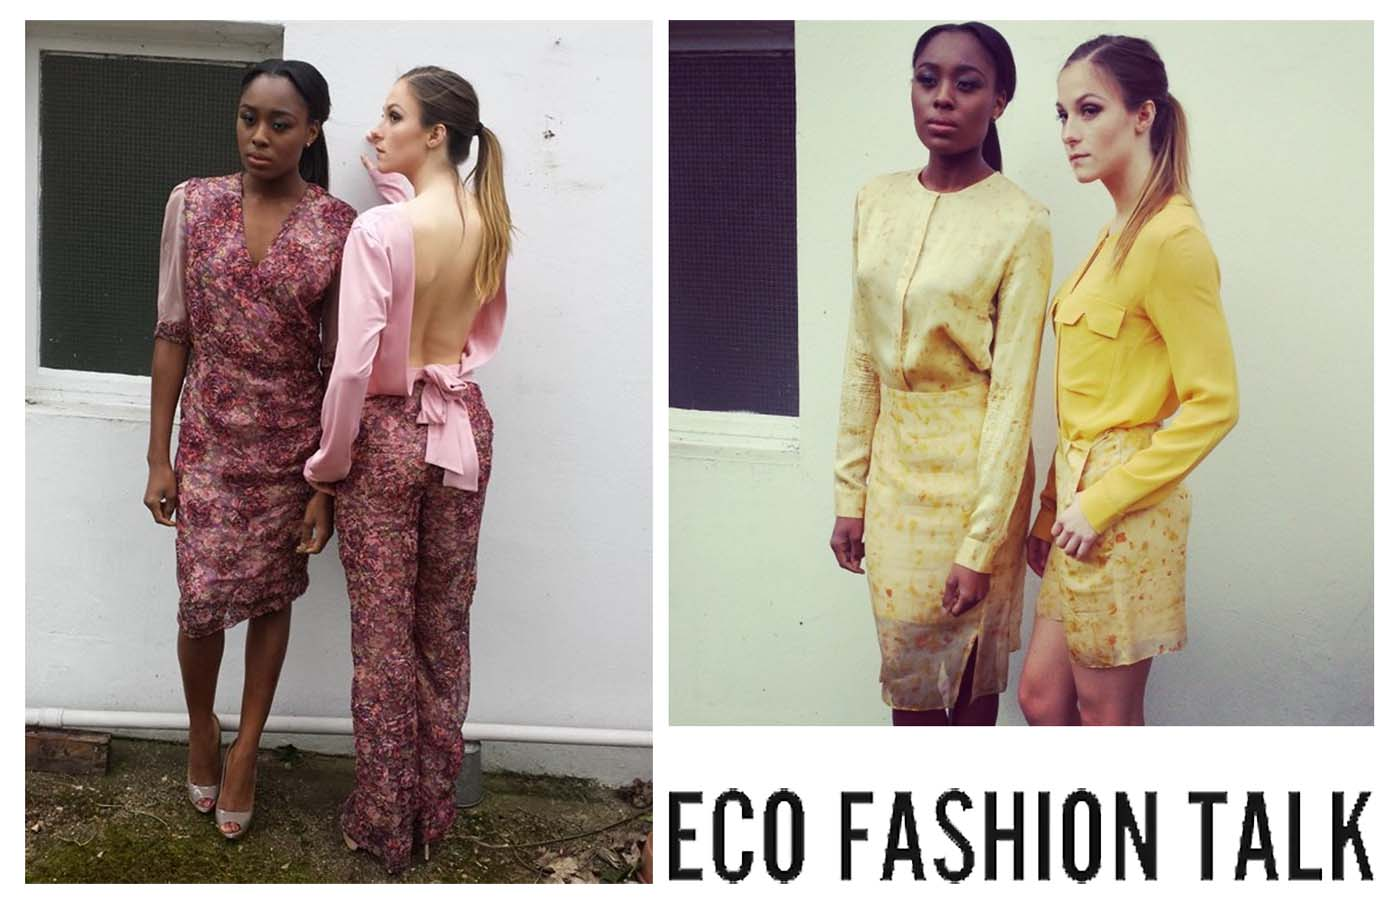 eco fashion talk